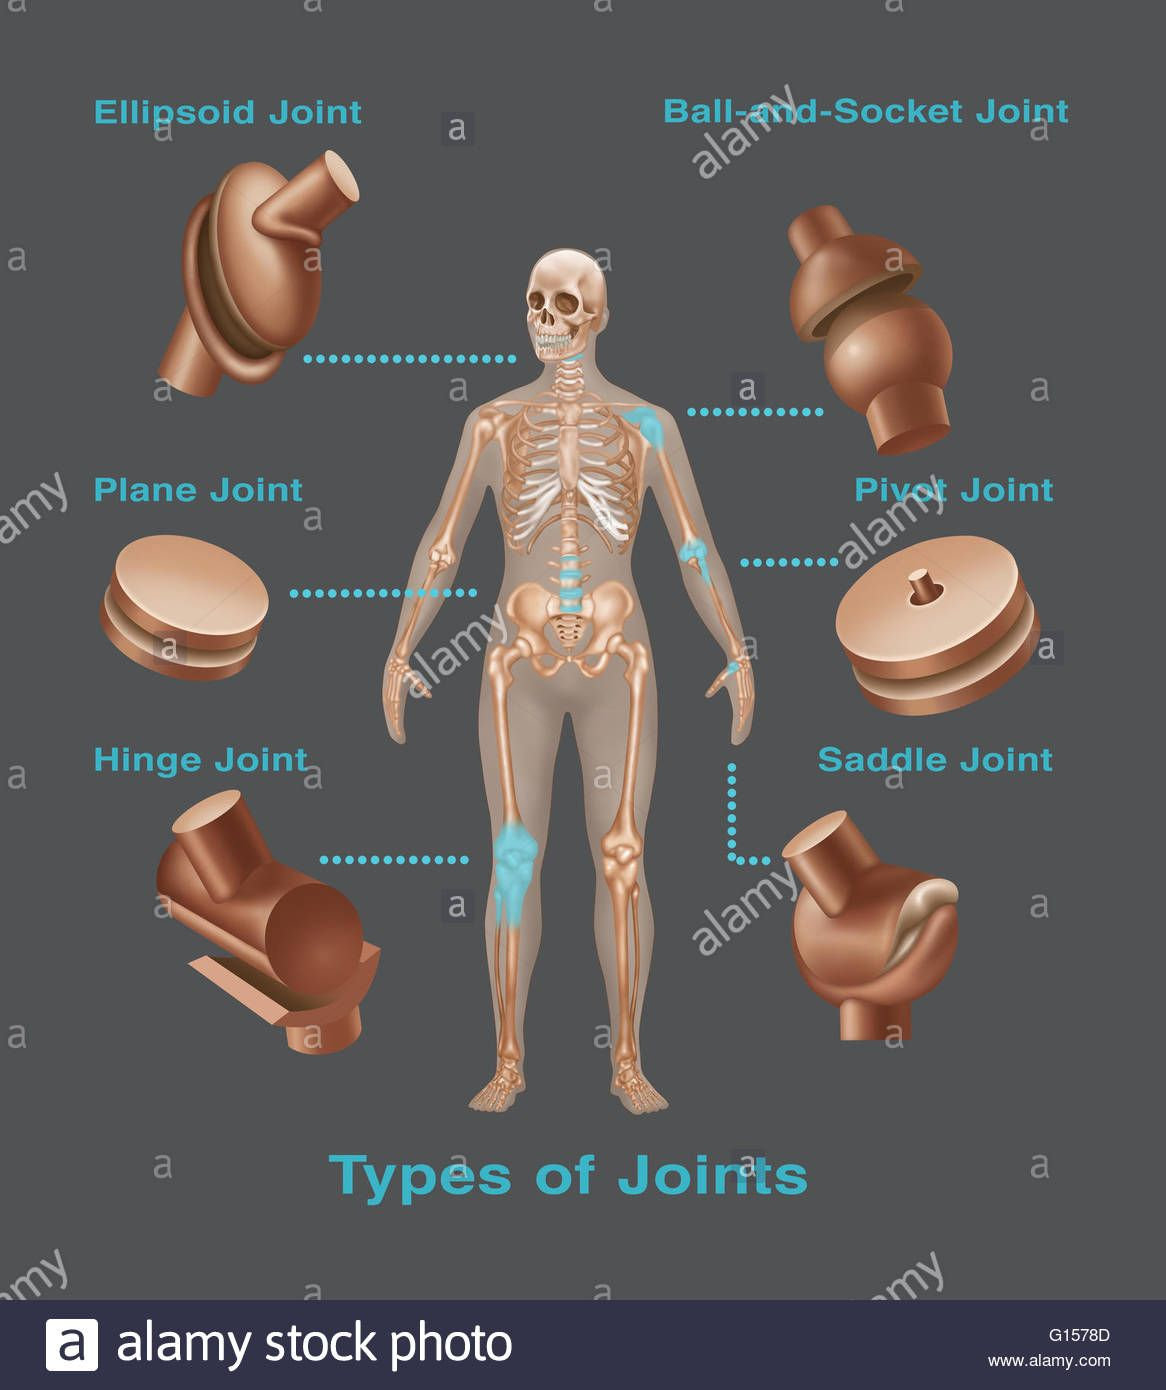 Joint Replacements In The Human Body Types Of Joint Replacements